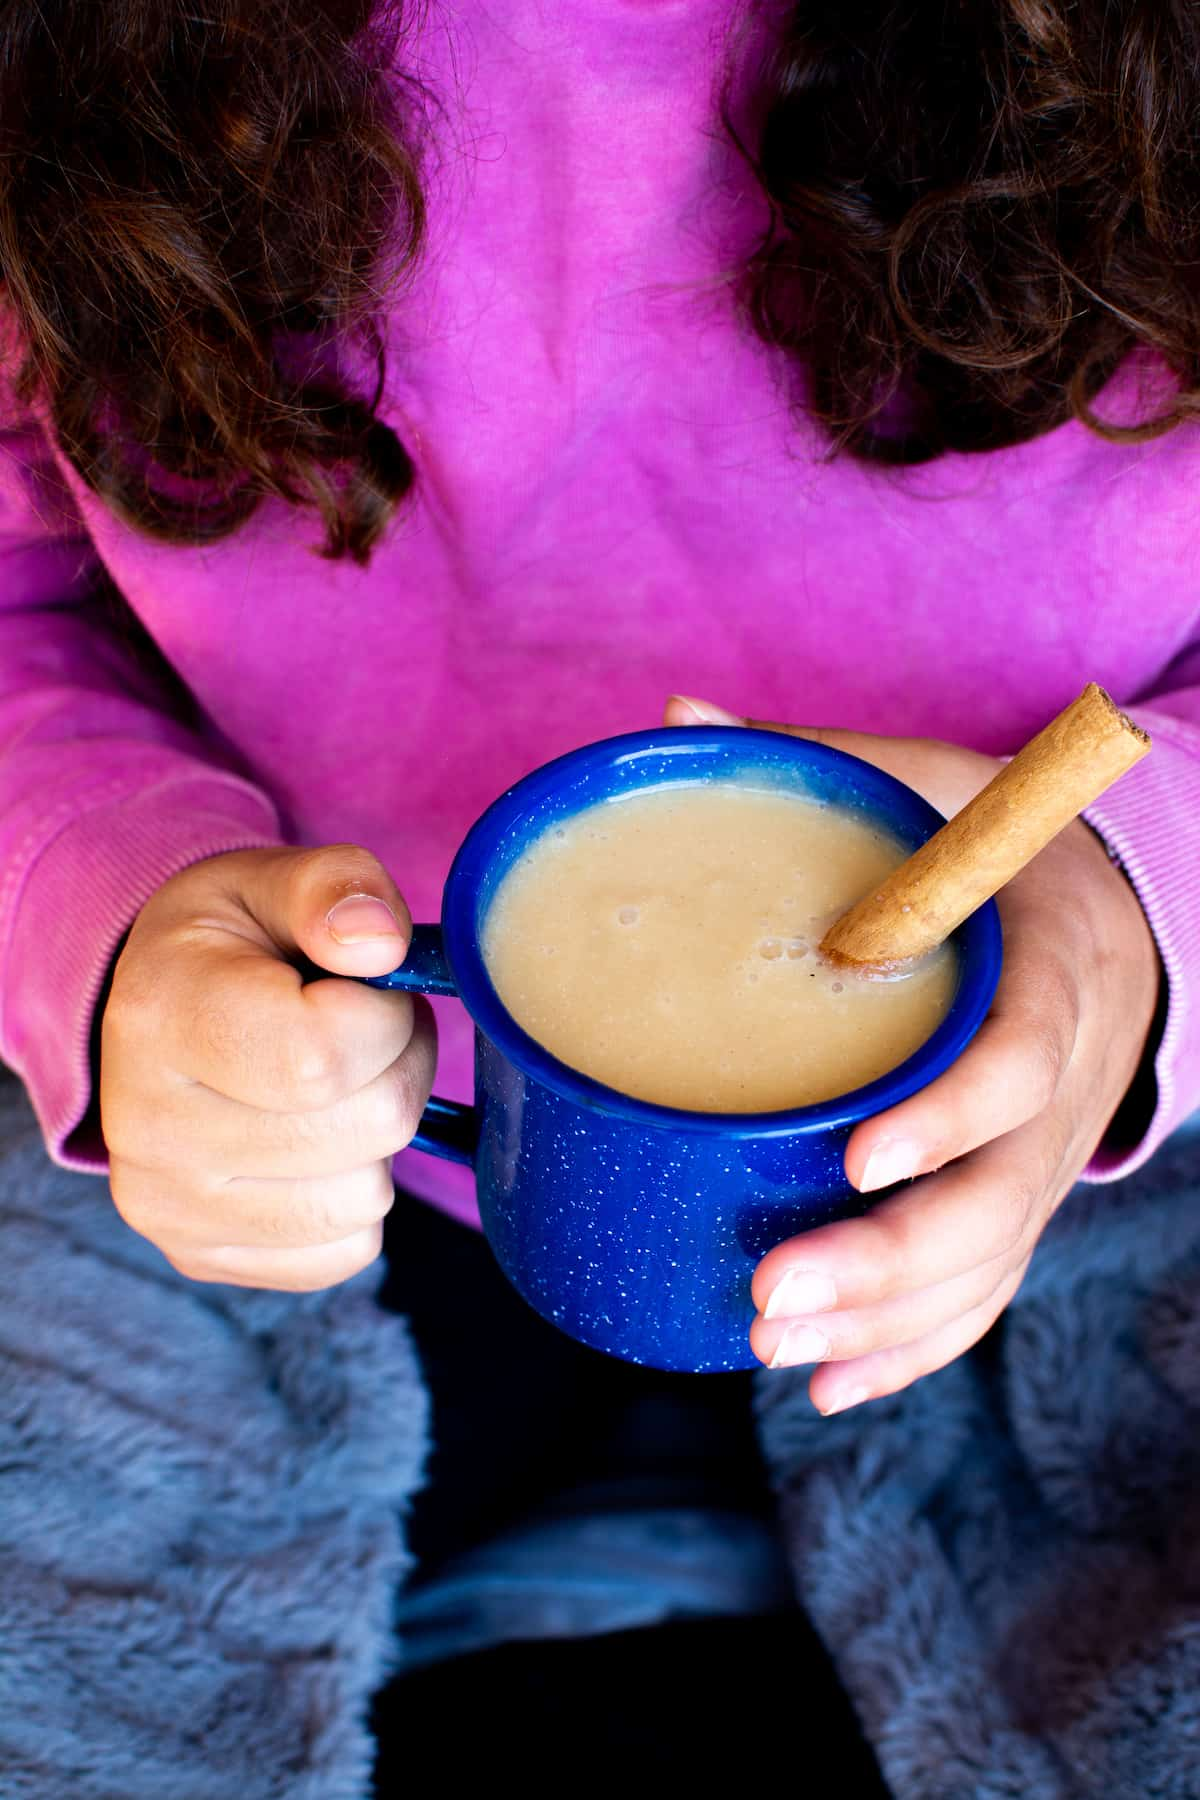 How to make Atole at home! This warm Mexican drink combines cinnamon, piloncillo, and masa harina for a creamy warming cup of comfort. Use plant-based milk for a vegan alternative. Great for breakfast, a snack, or lovely way to wind down at the end of the day. #atole #veganrecipe #Mexicanatole #glutenfreerecipe